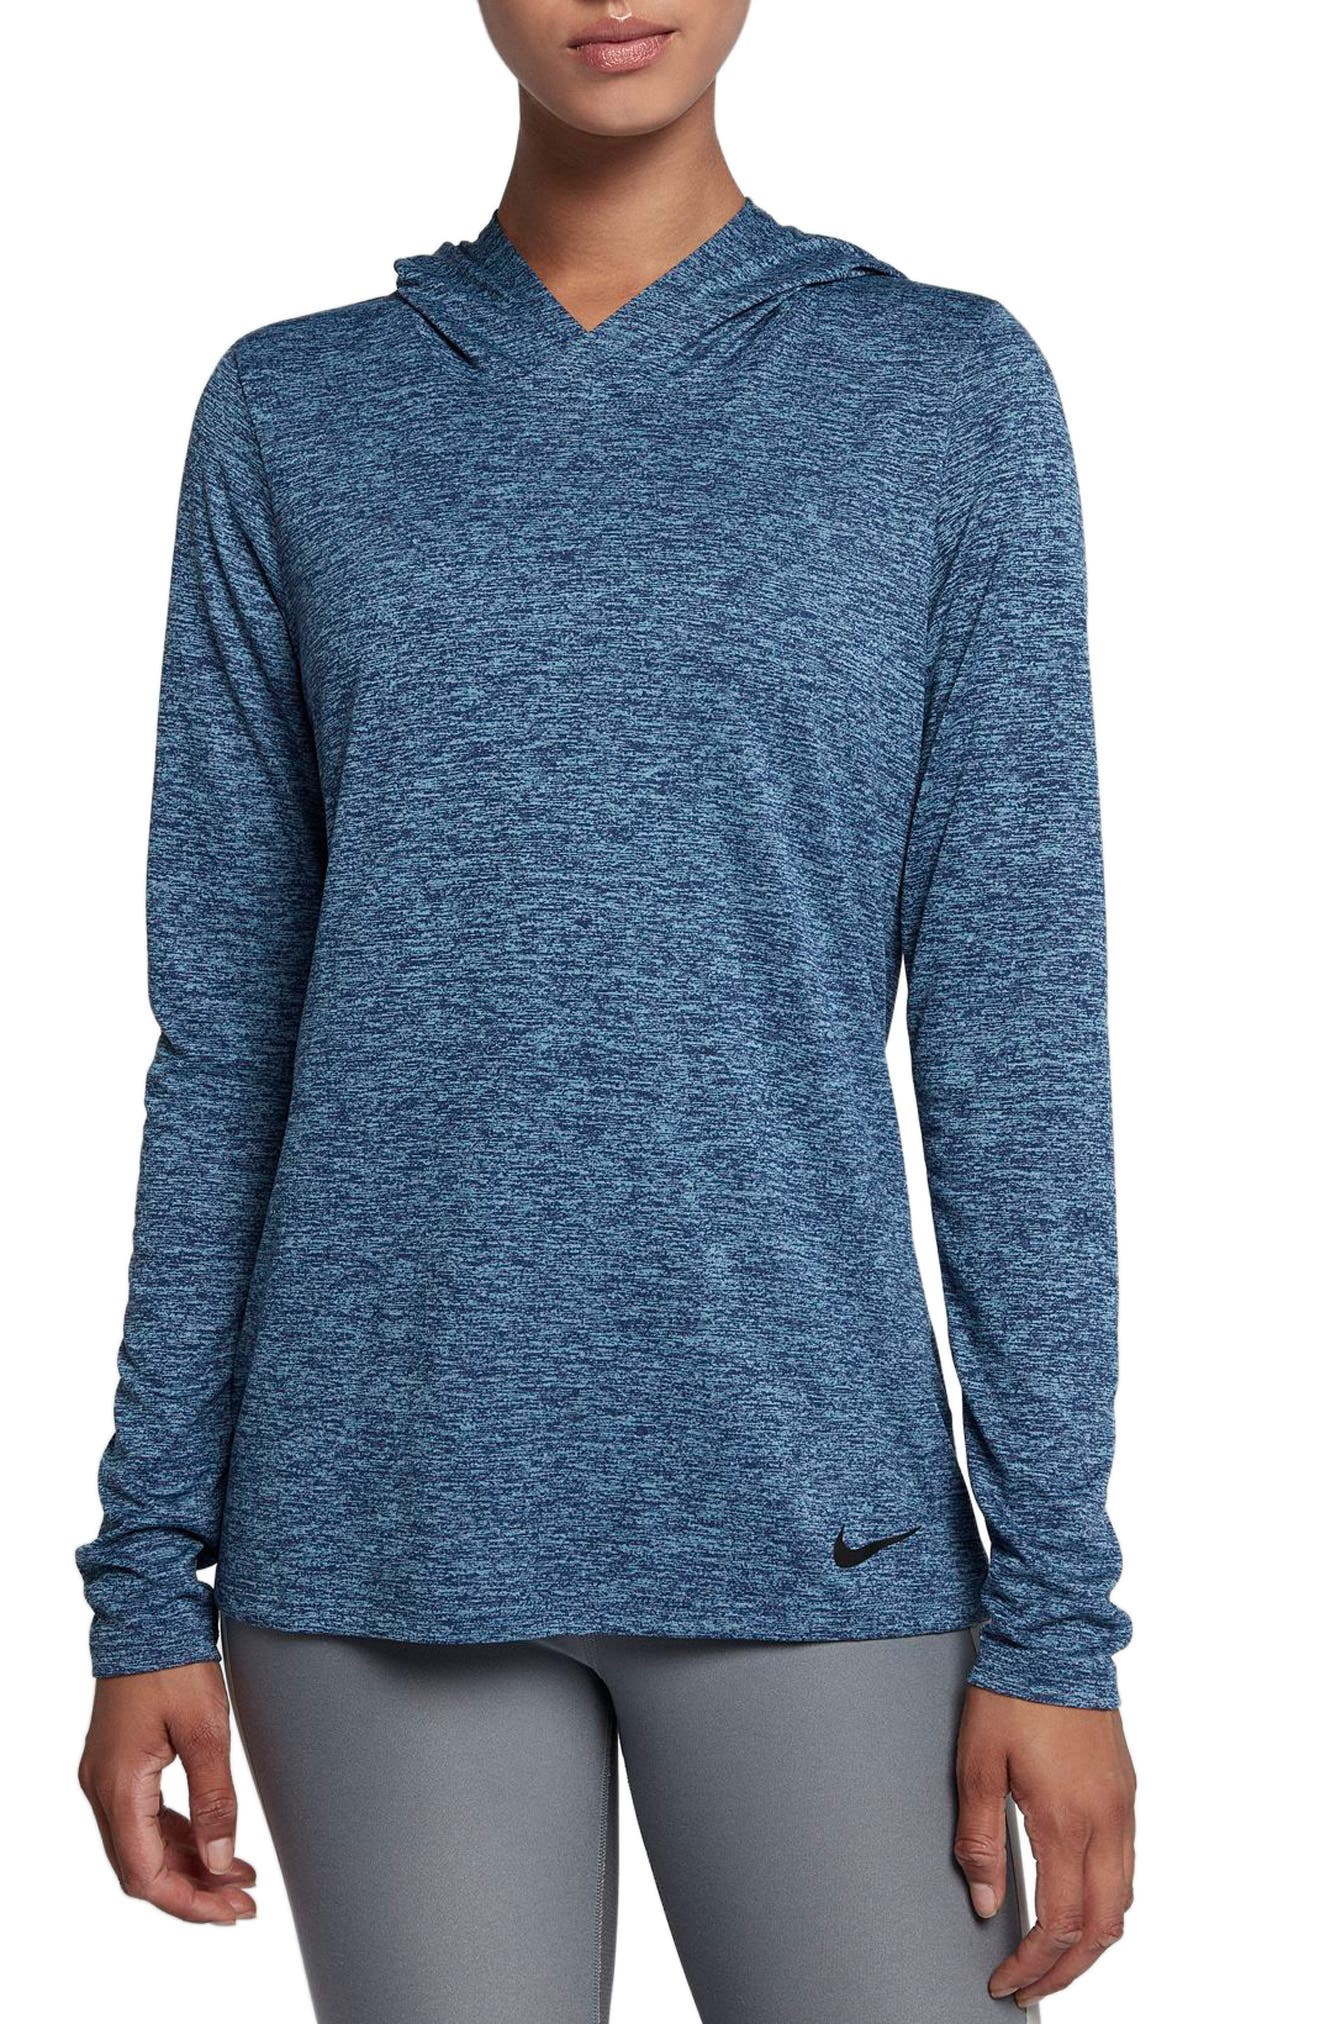 Nike Dry Legend Hooded Training Top